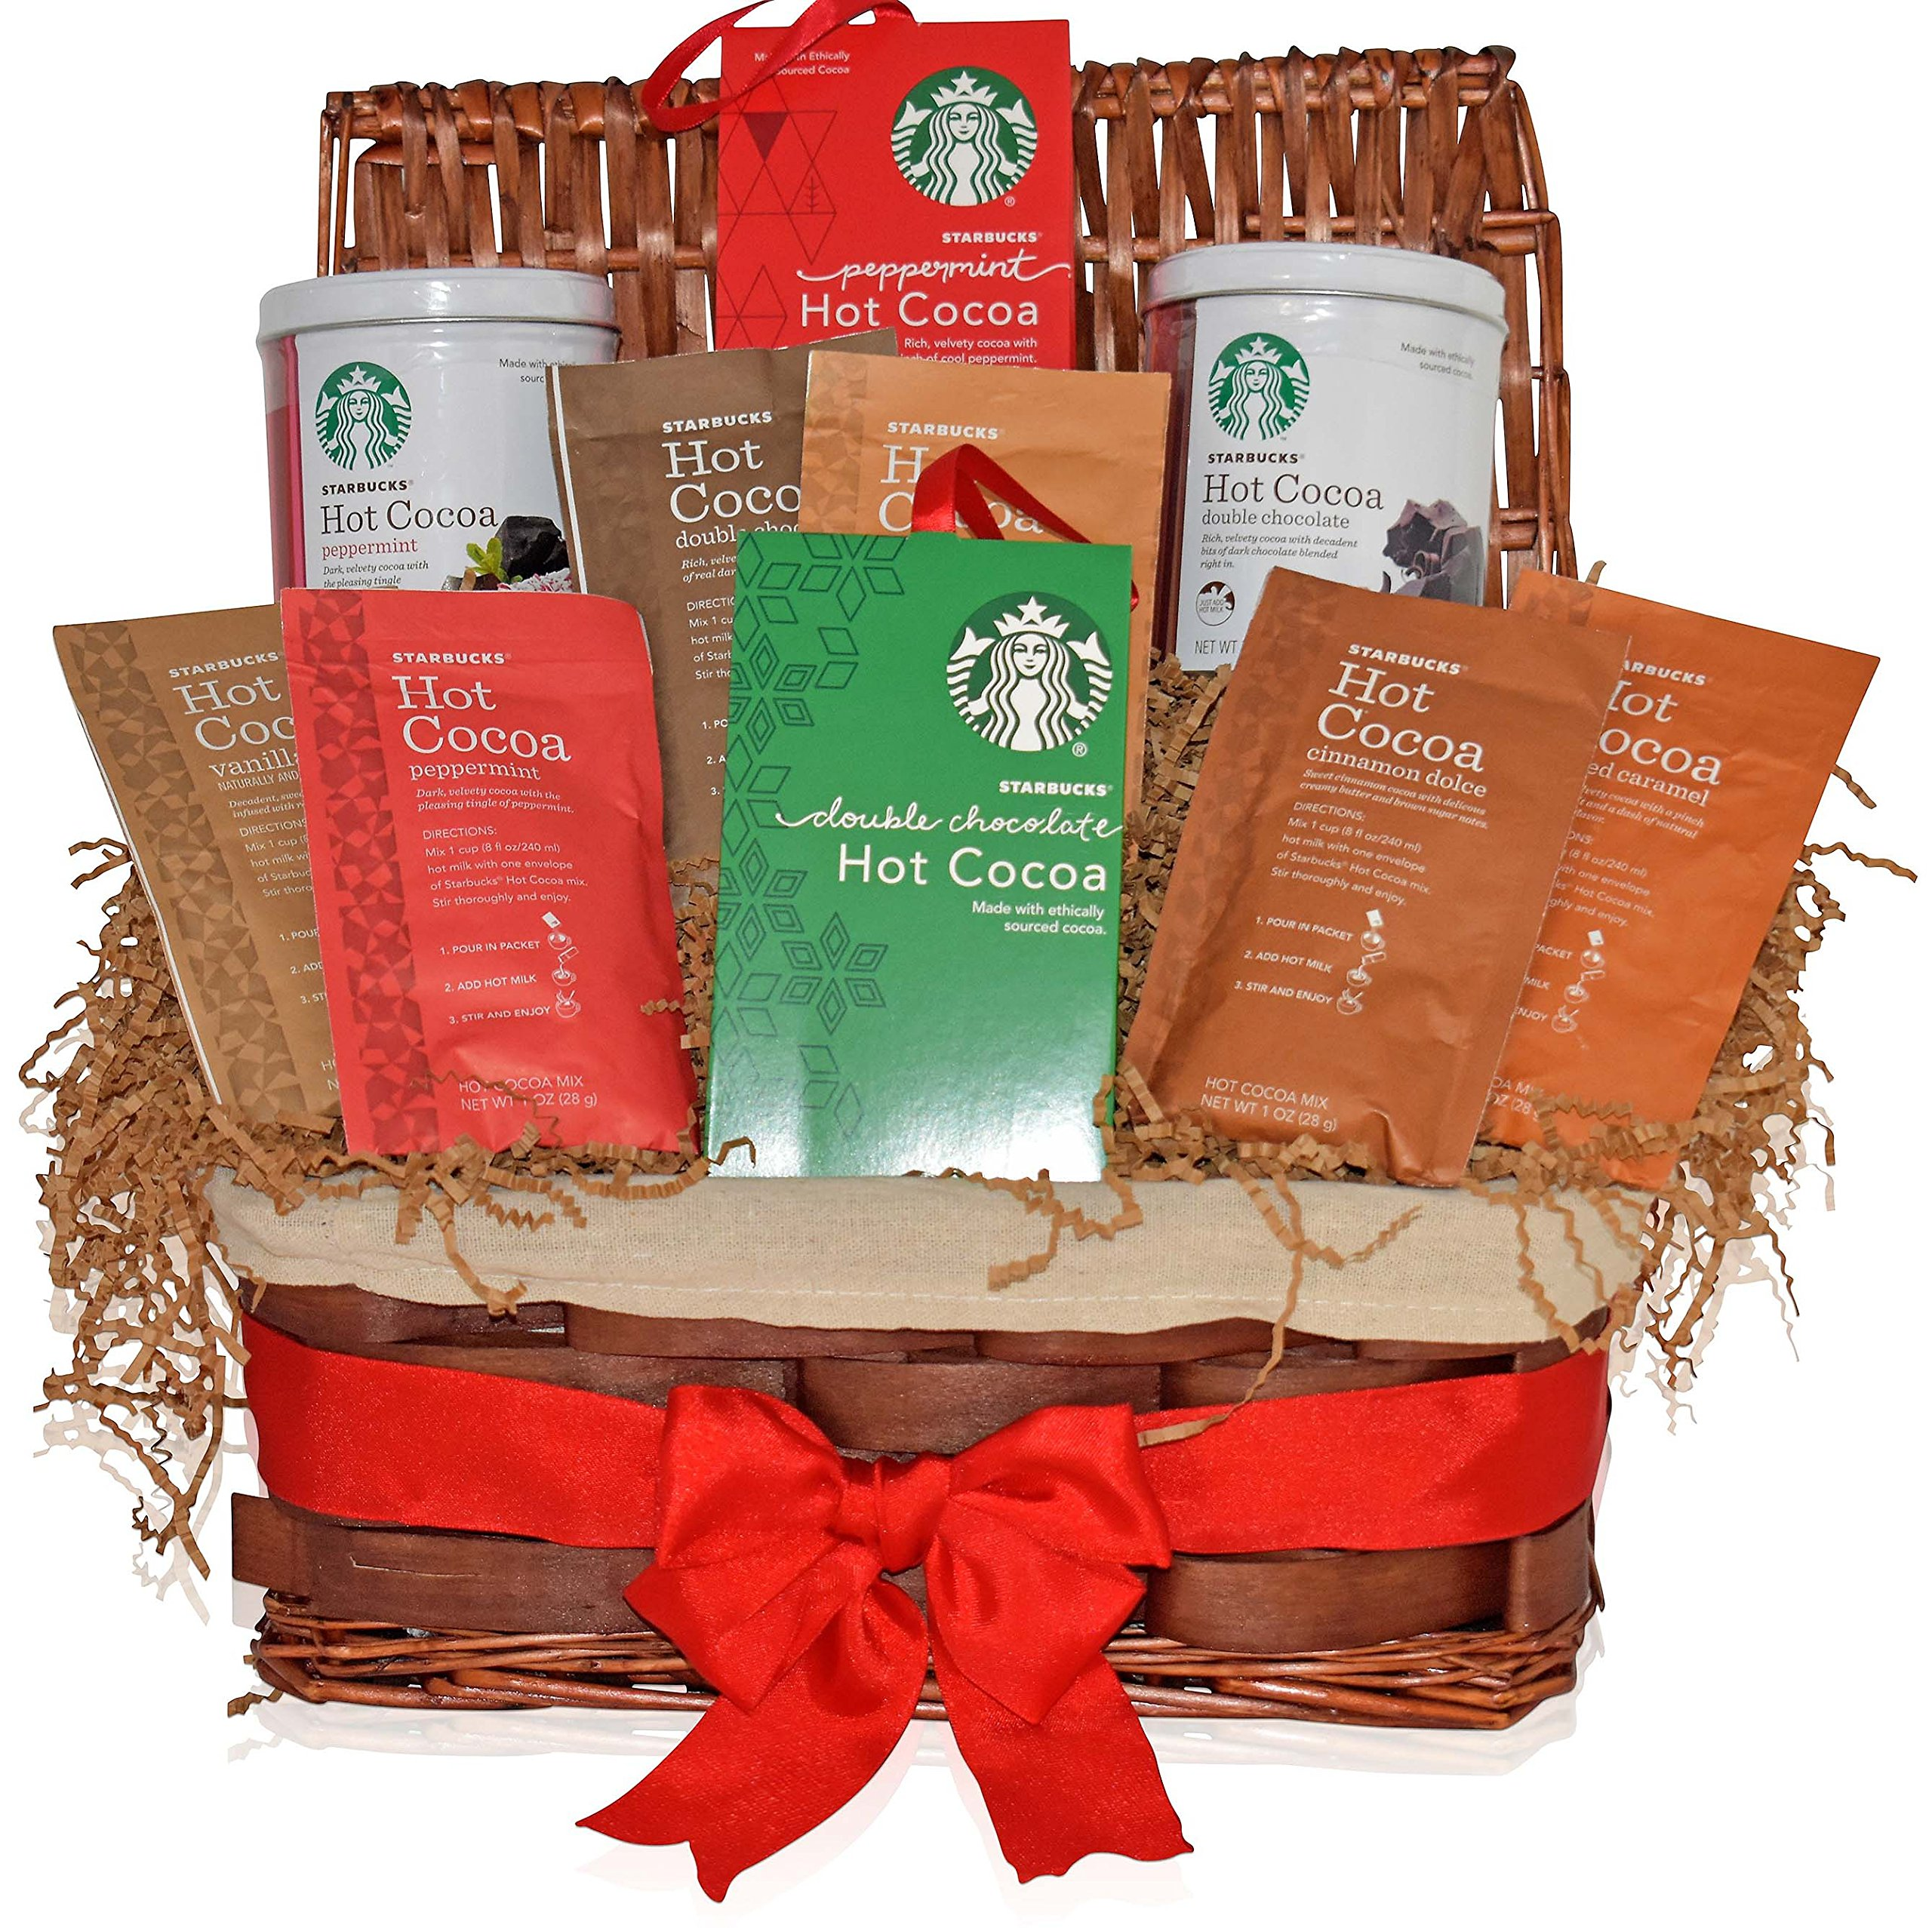 Starbucks Occasional Gift Basket - Gifts for Mother's Day - 6 Different Hot Cocoa Flavors - Peppermint, Double Chocolate, Salted Caramel, Marshmallow and more - Gifts for Family, Friends, Coworkers